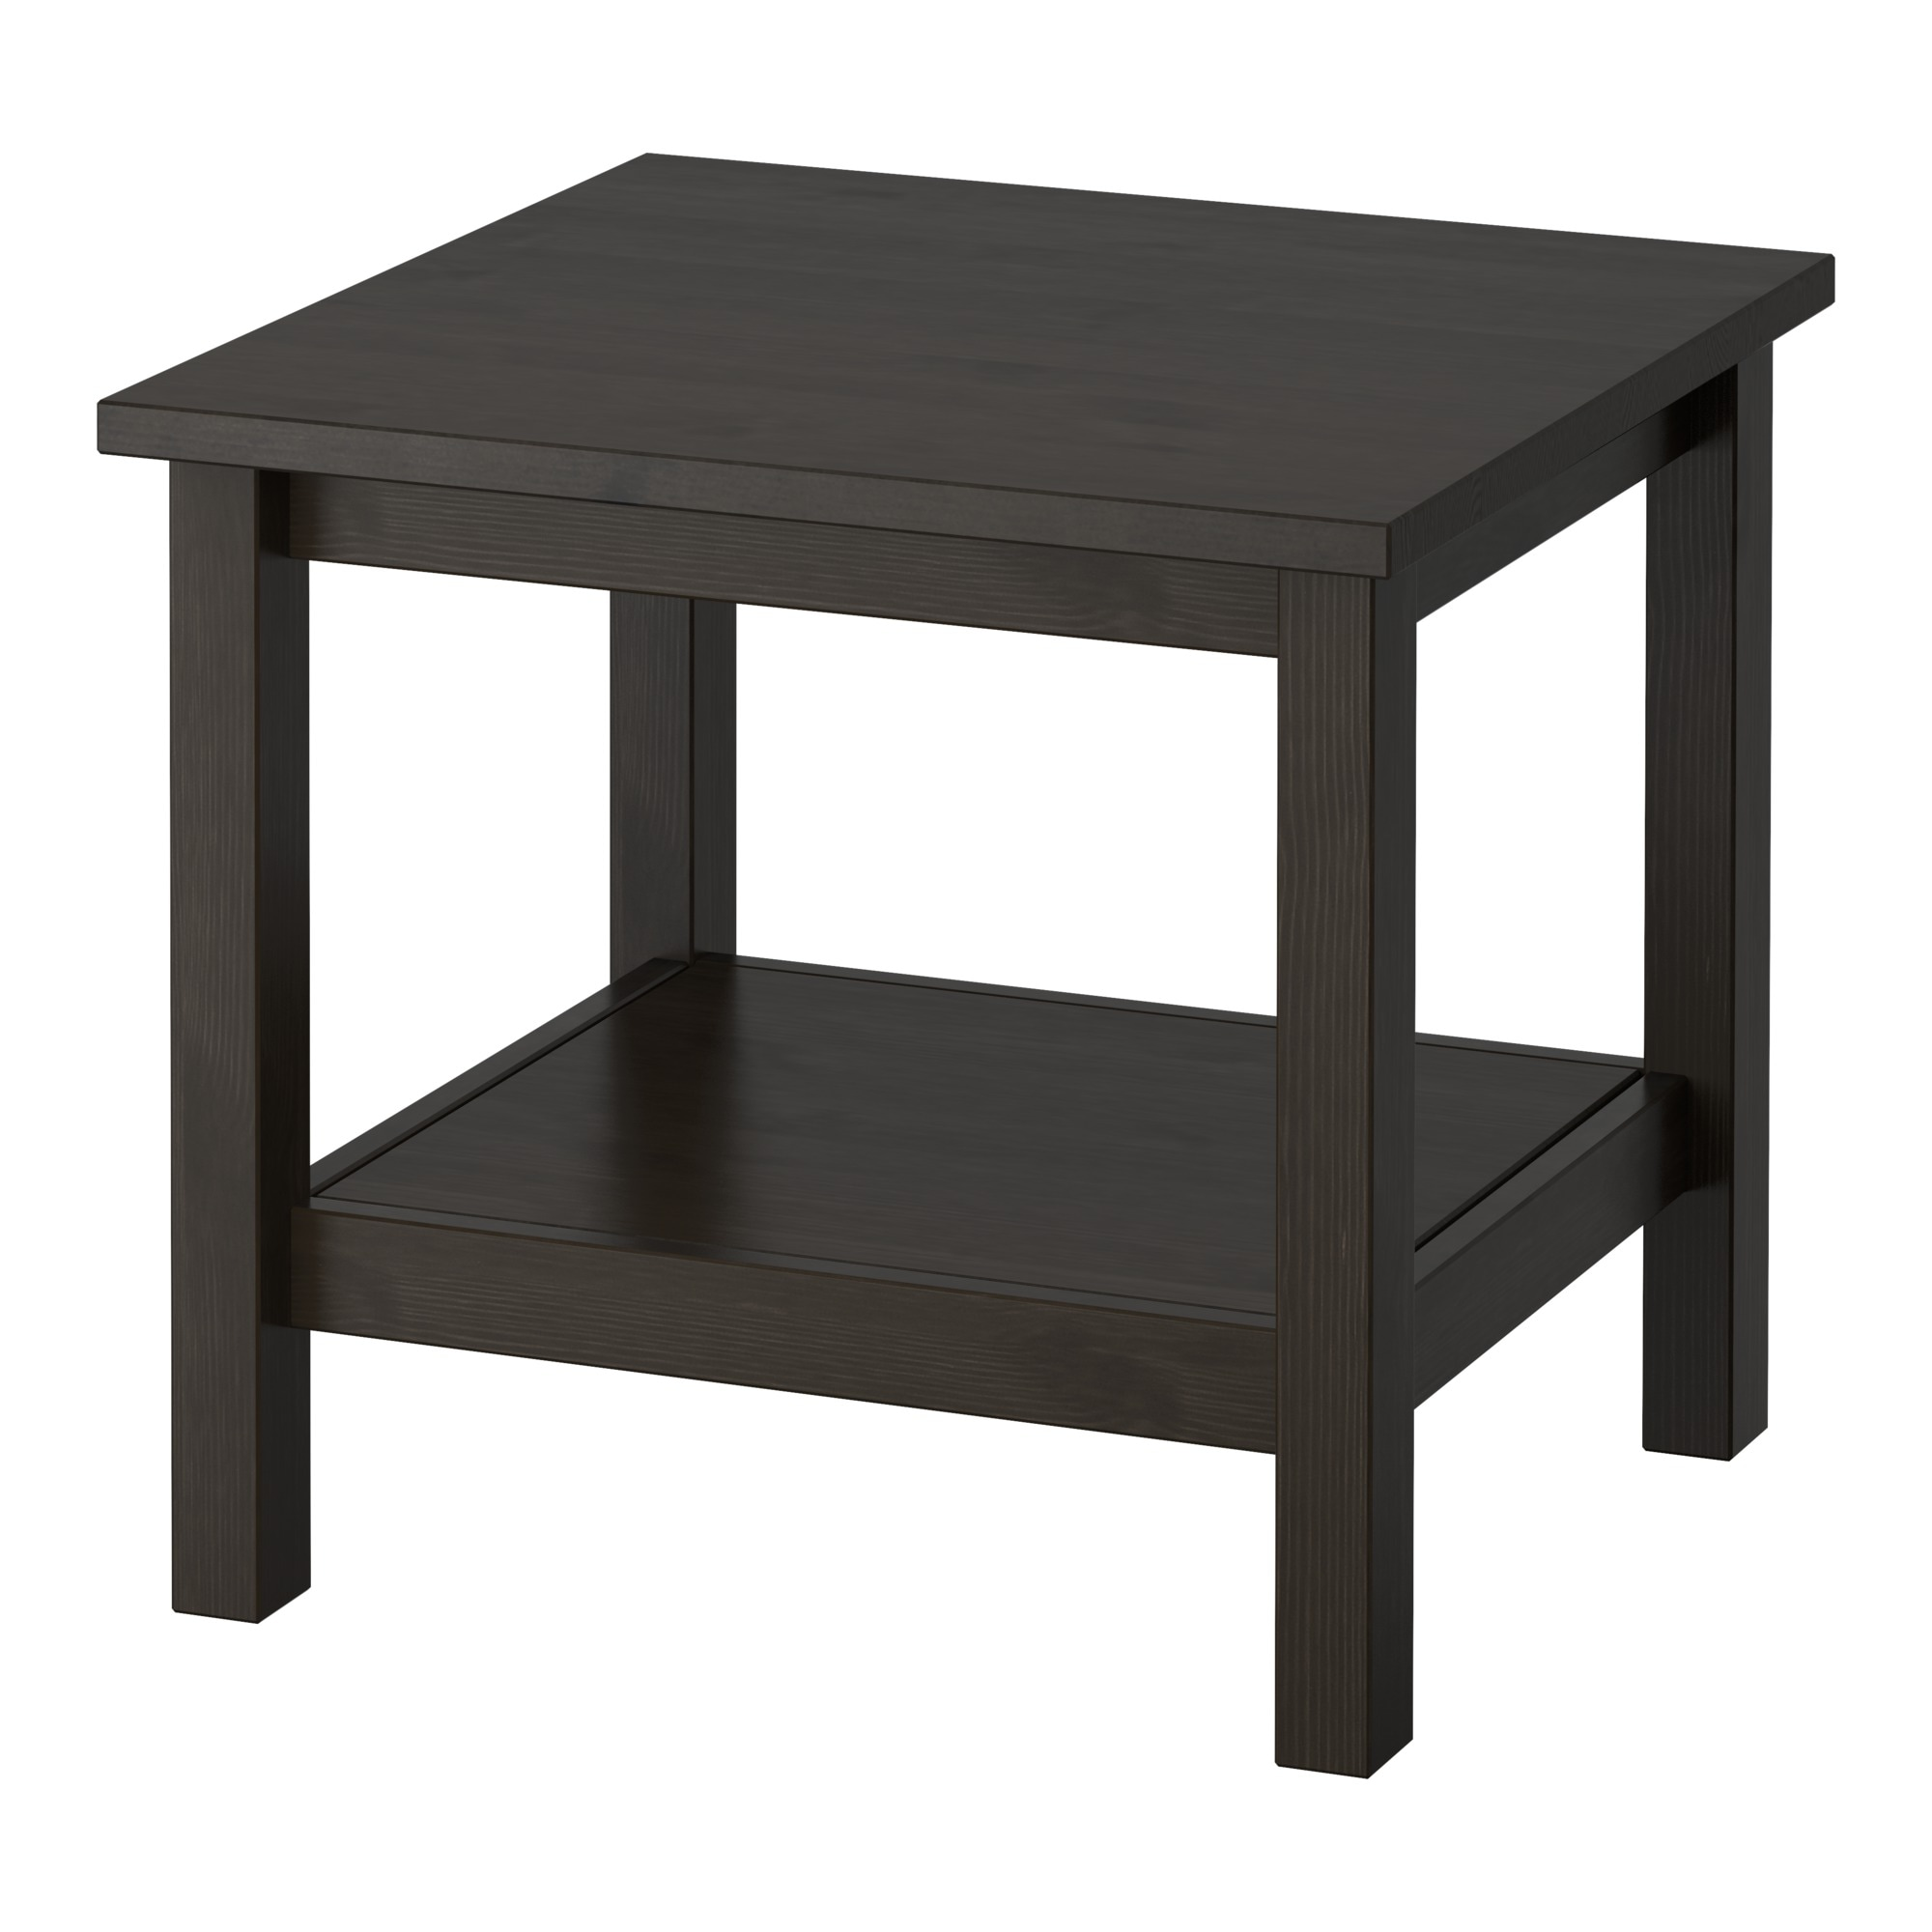 Perfect HEMNES Side Table   Black Brown   IKEA